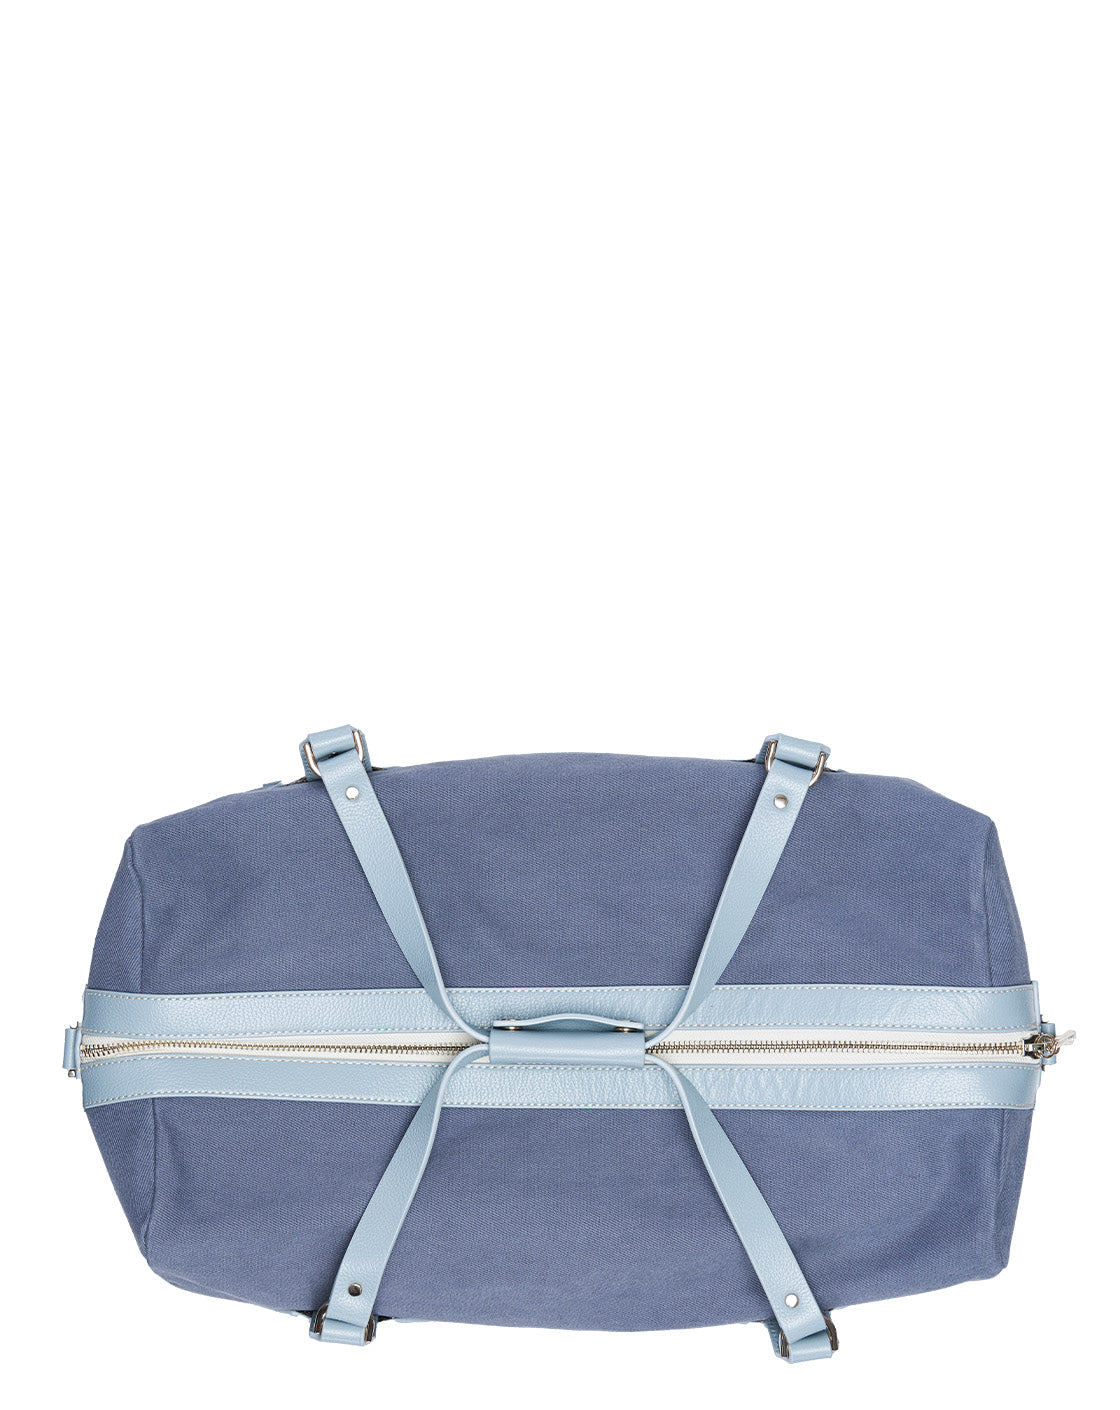 Travel Bundle in Blue